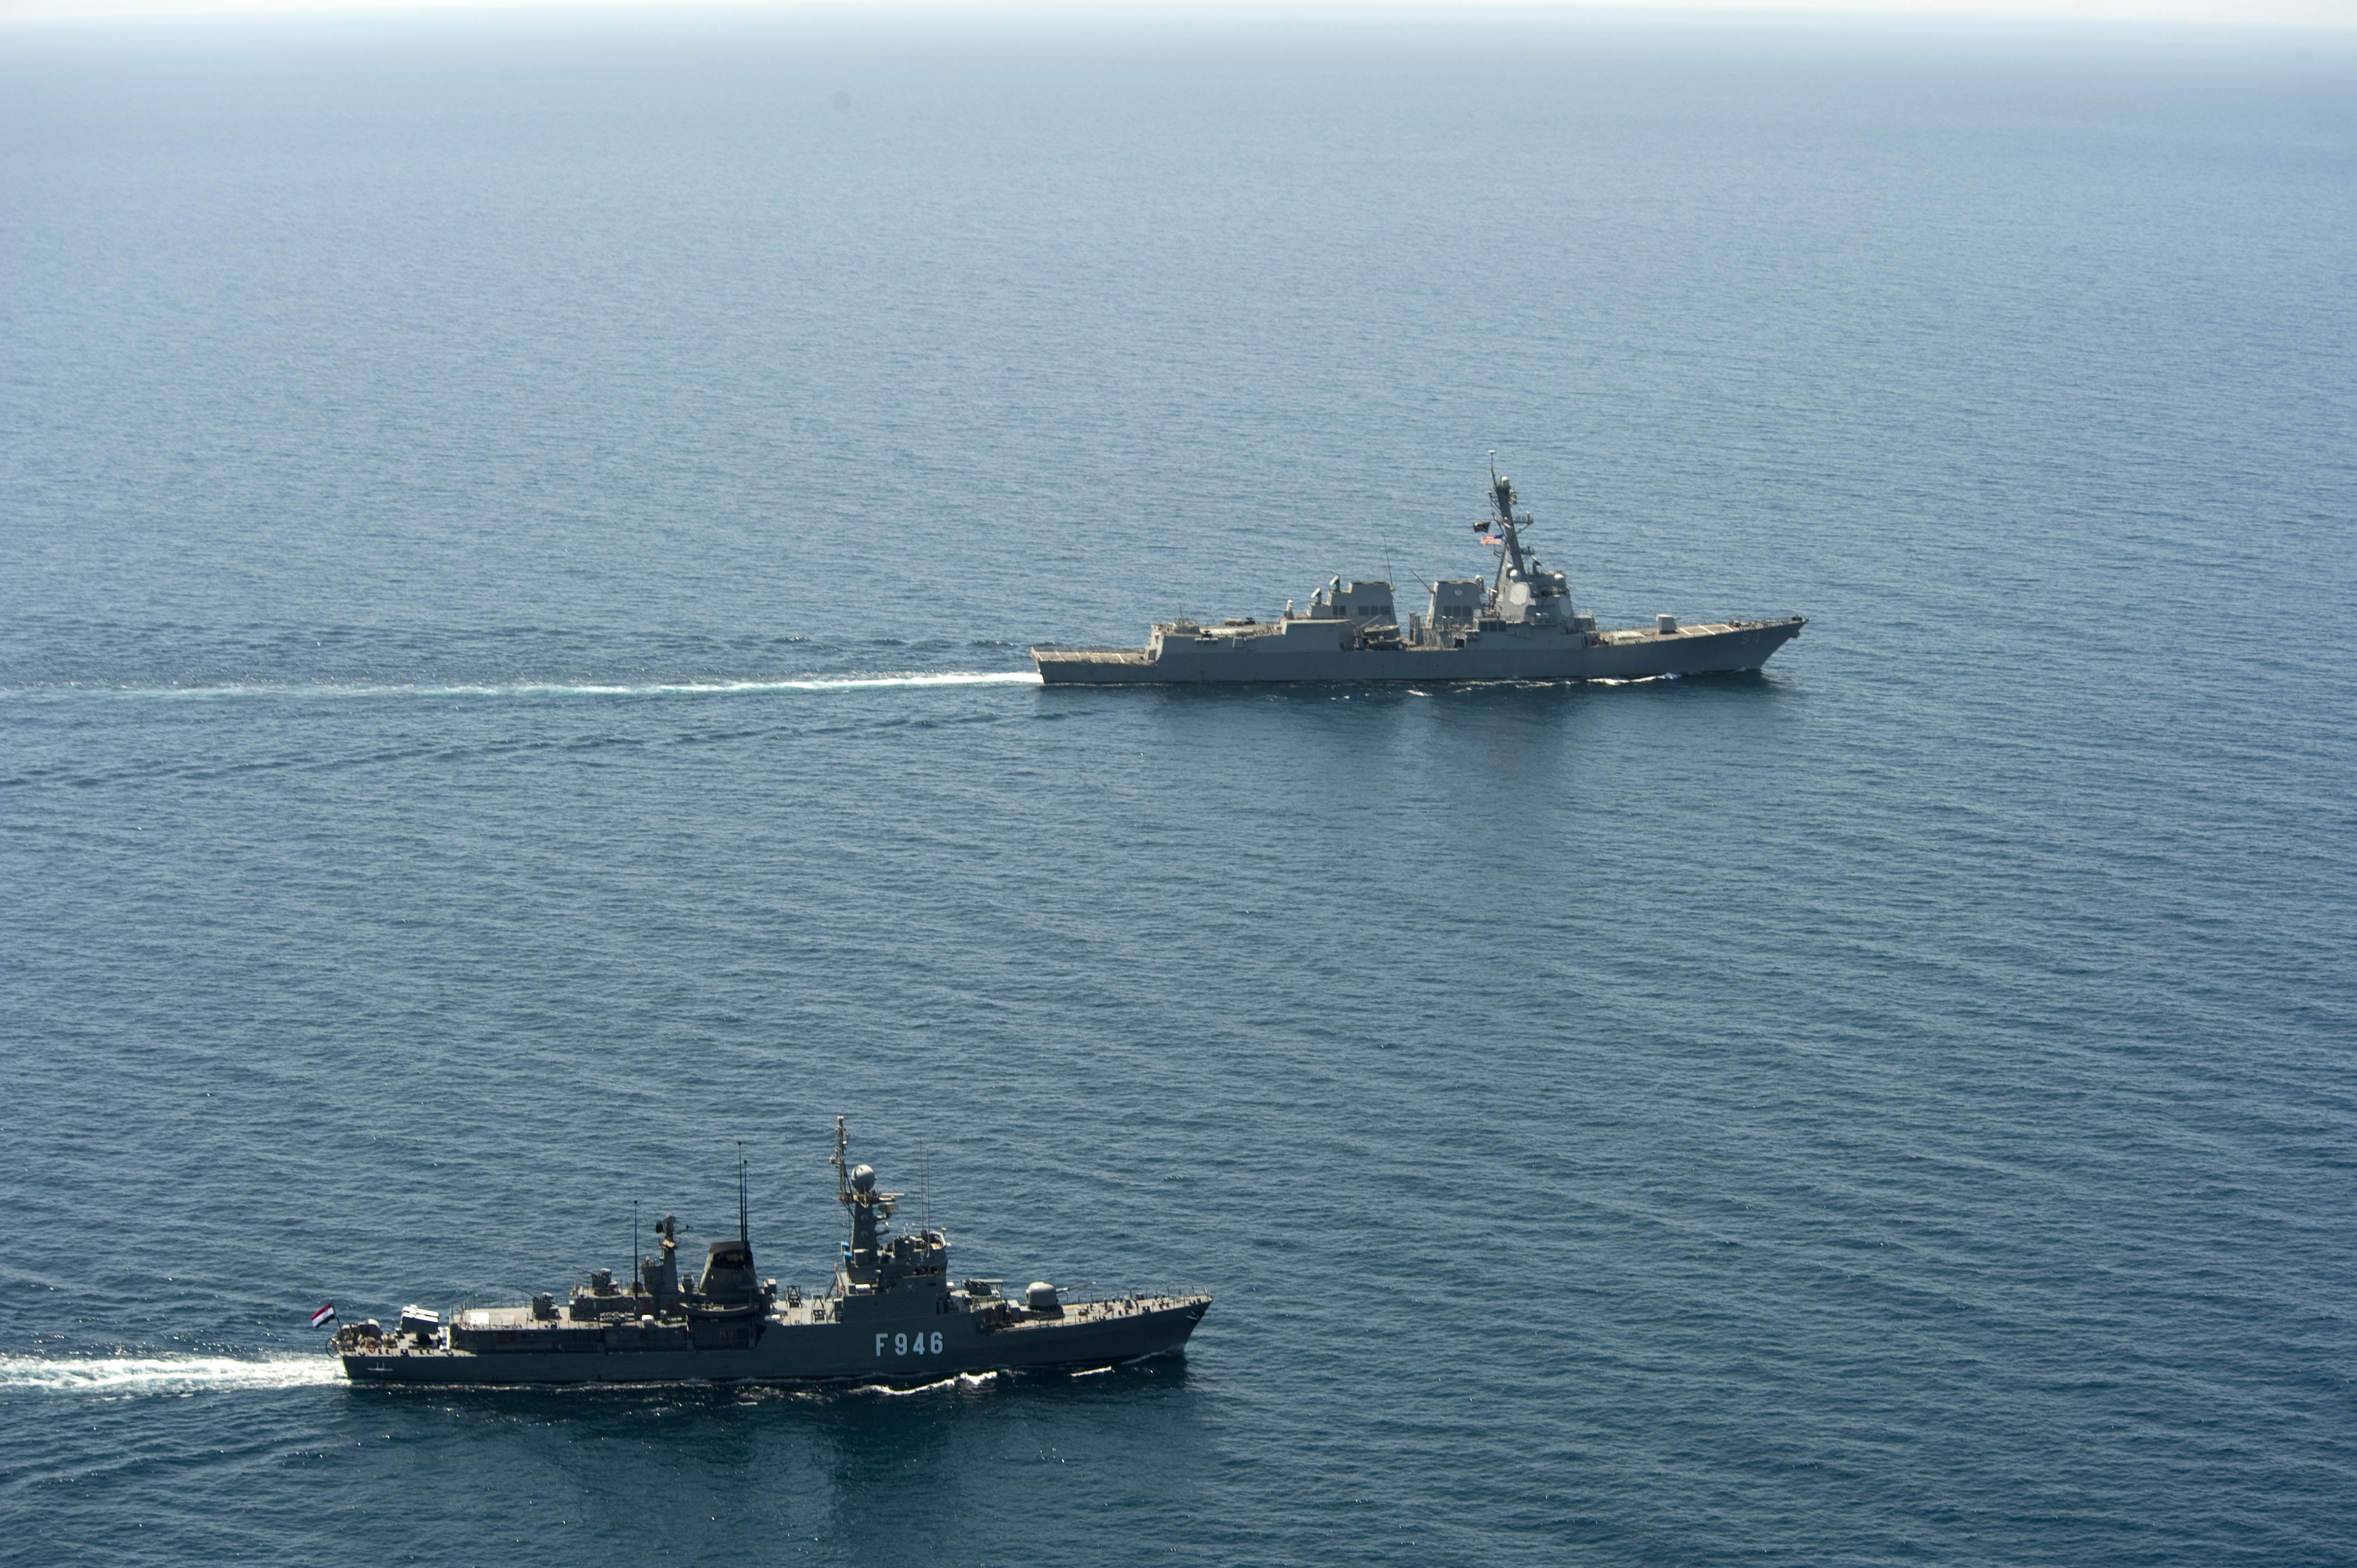 Egypt and Spain conduct naval exercise in Red Sea